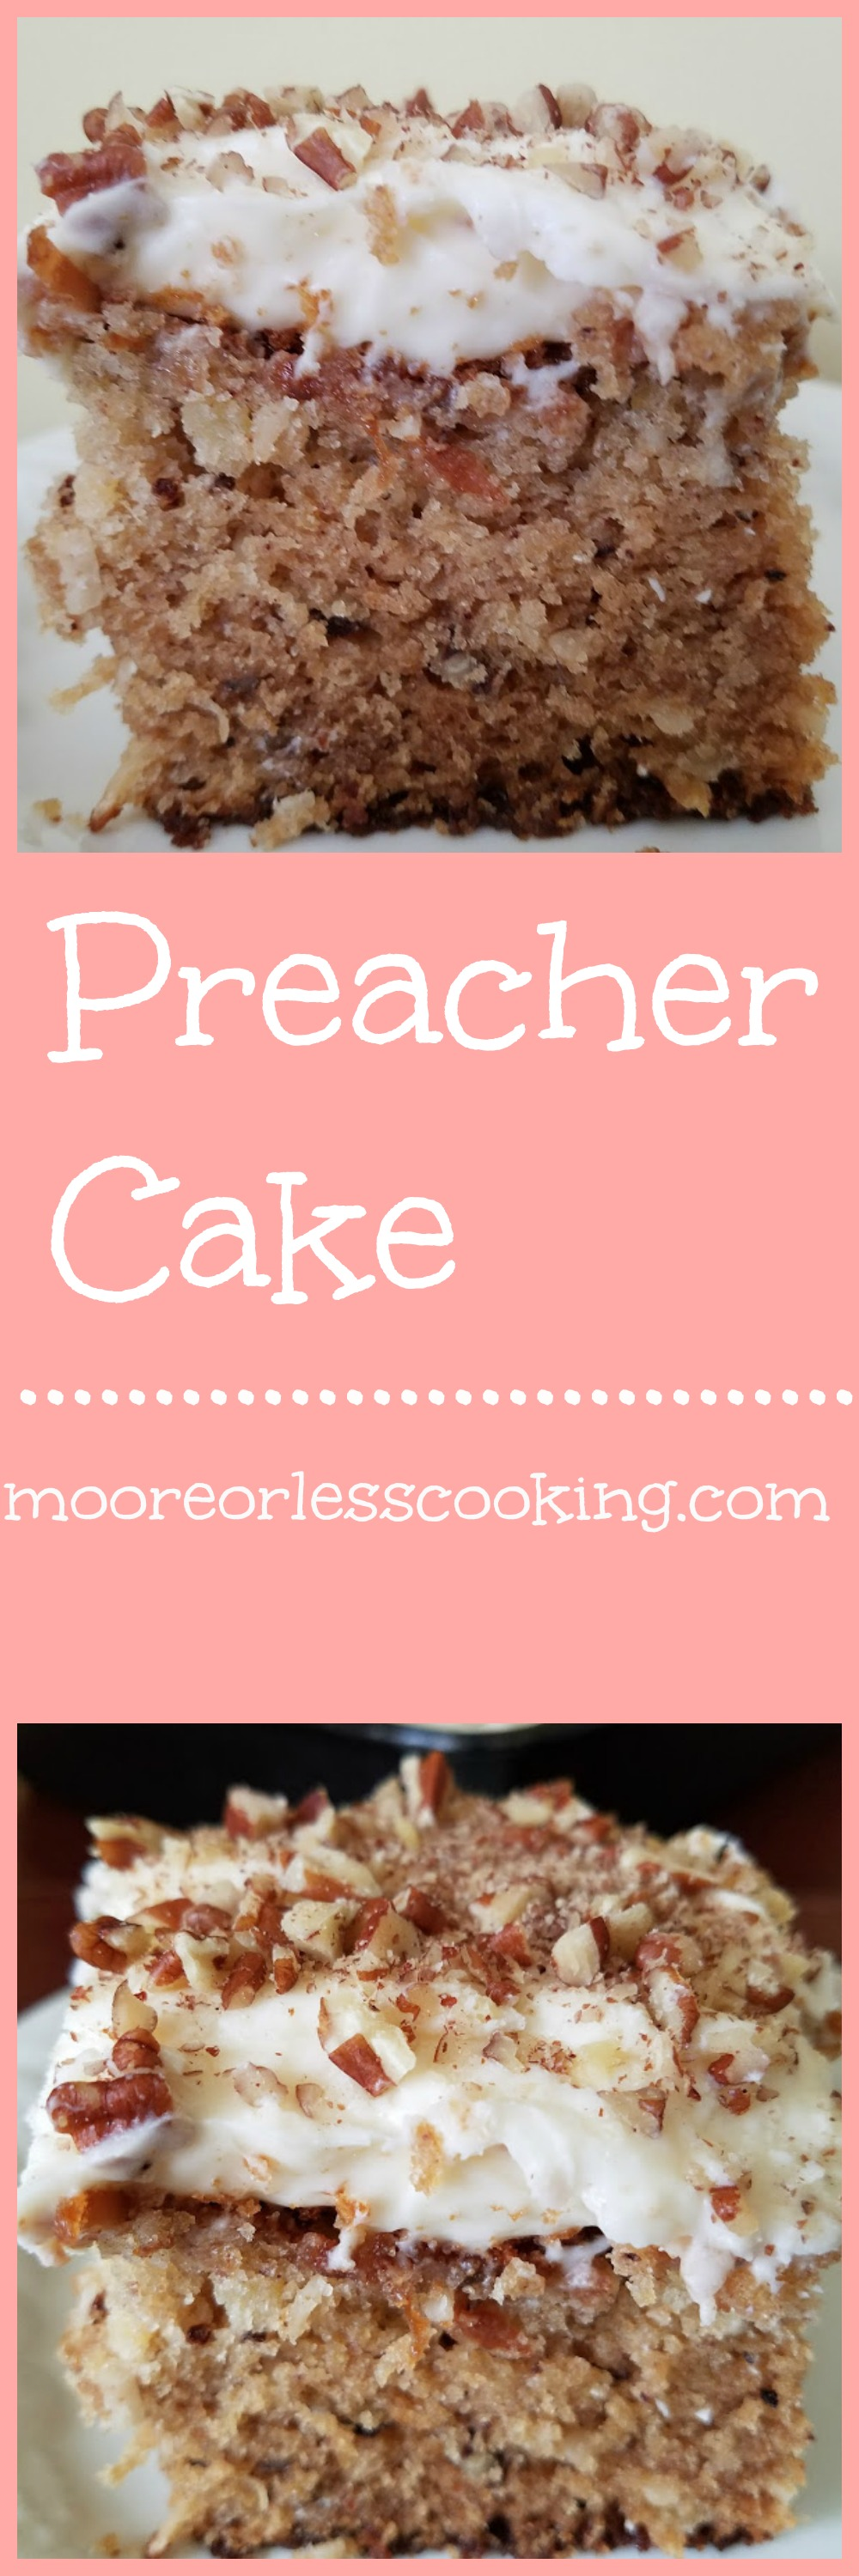 Preacher Cake Moore Or Less Cooking